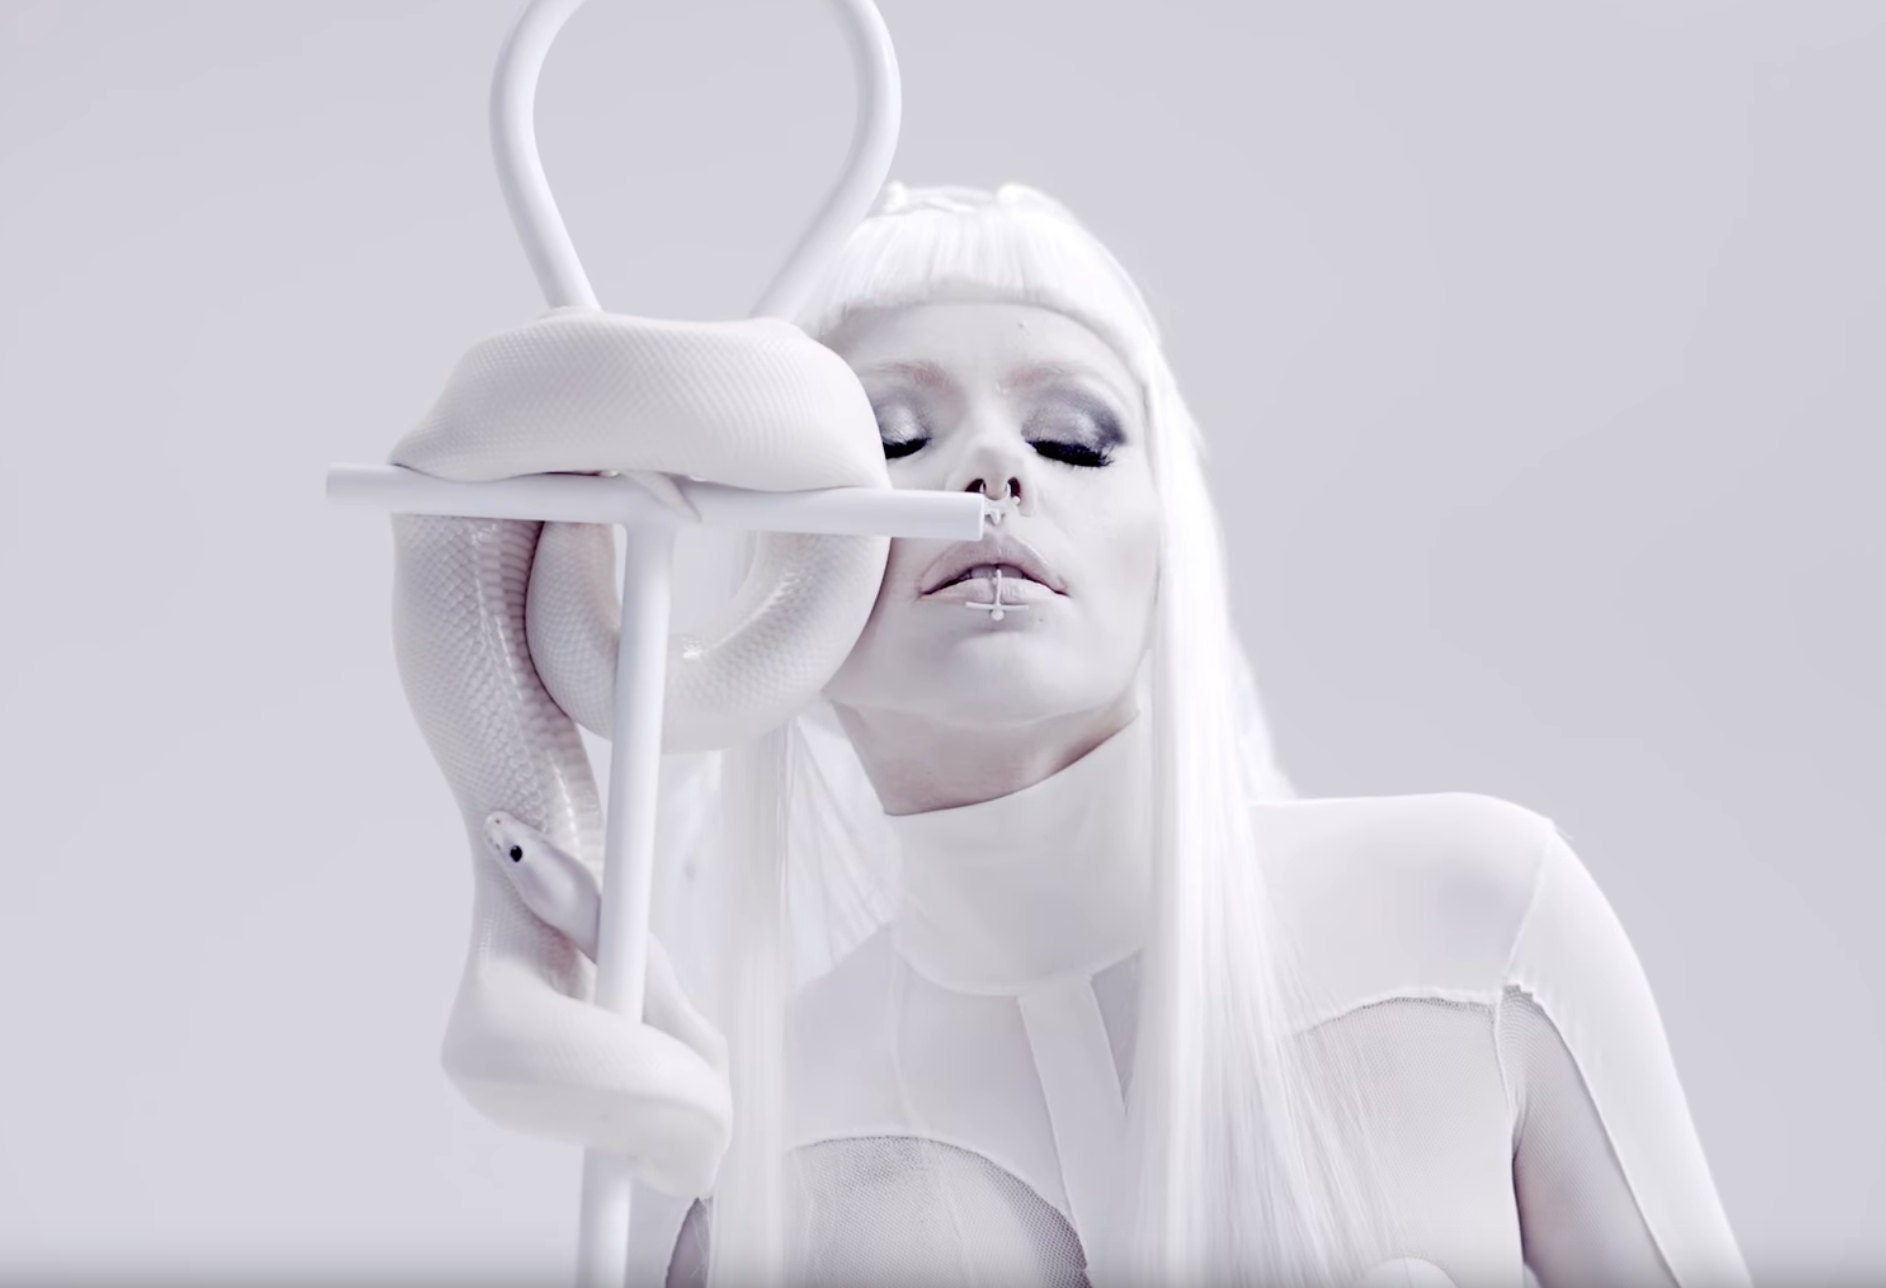 kerli savages jewelry inchoo bijoux lip ring